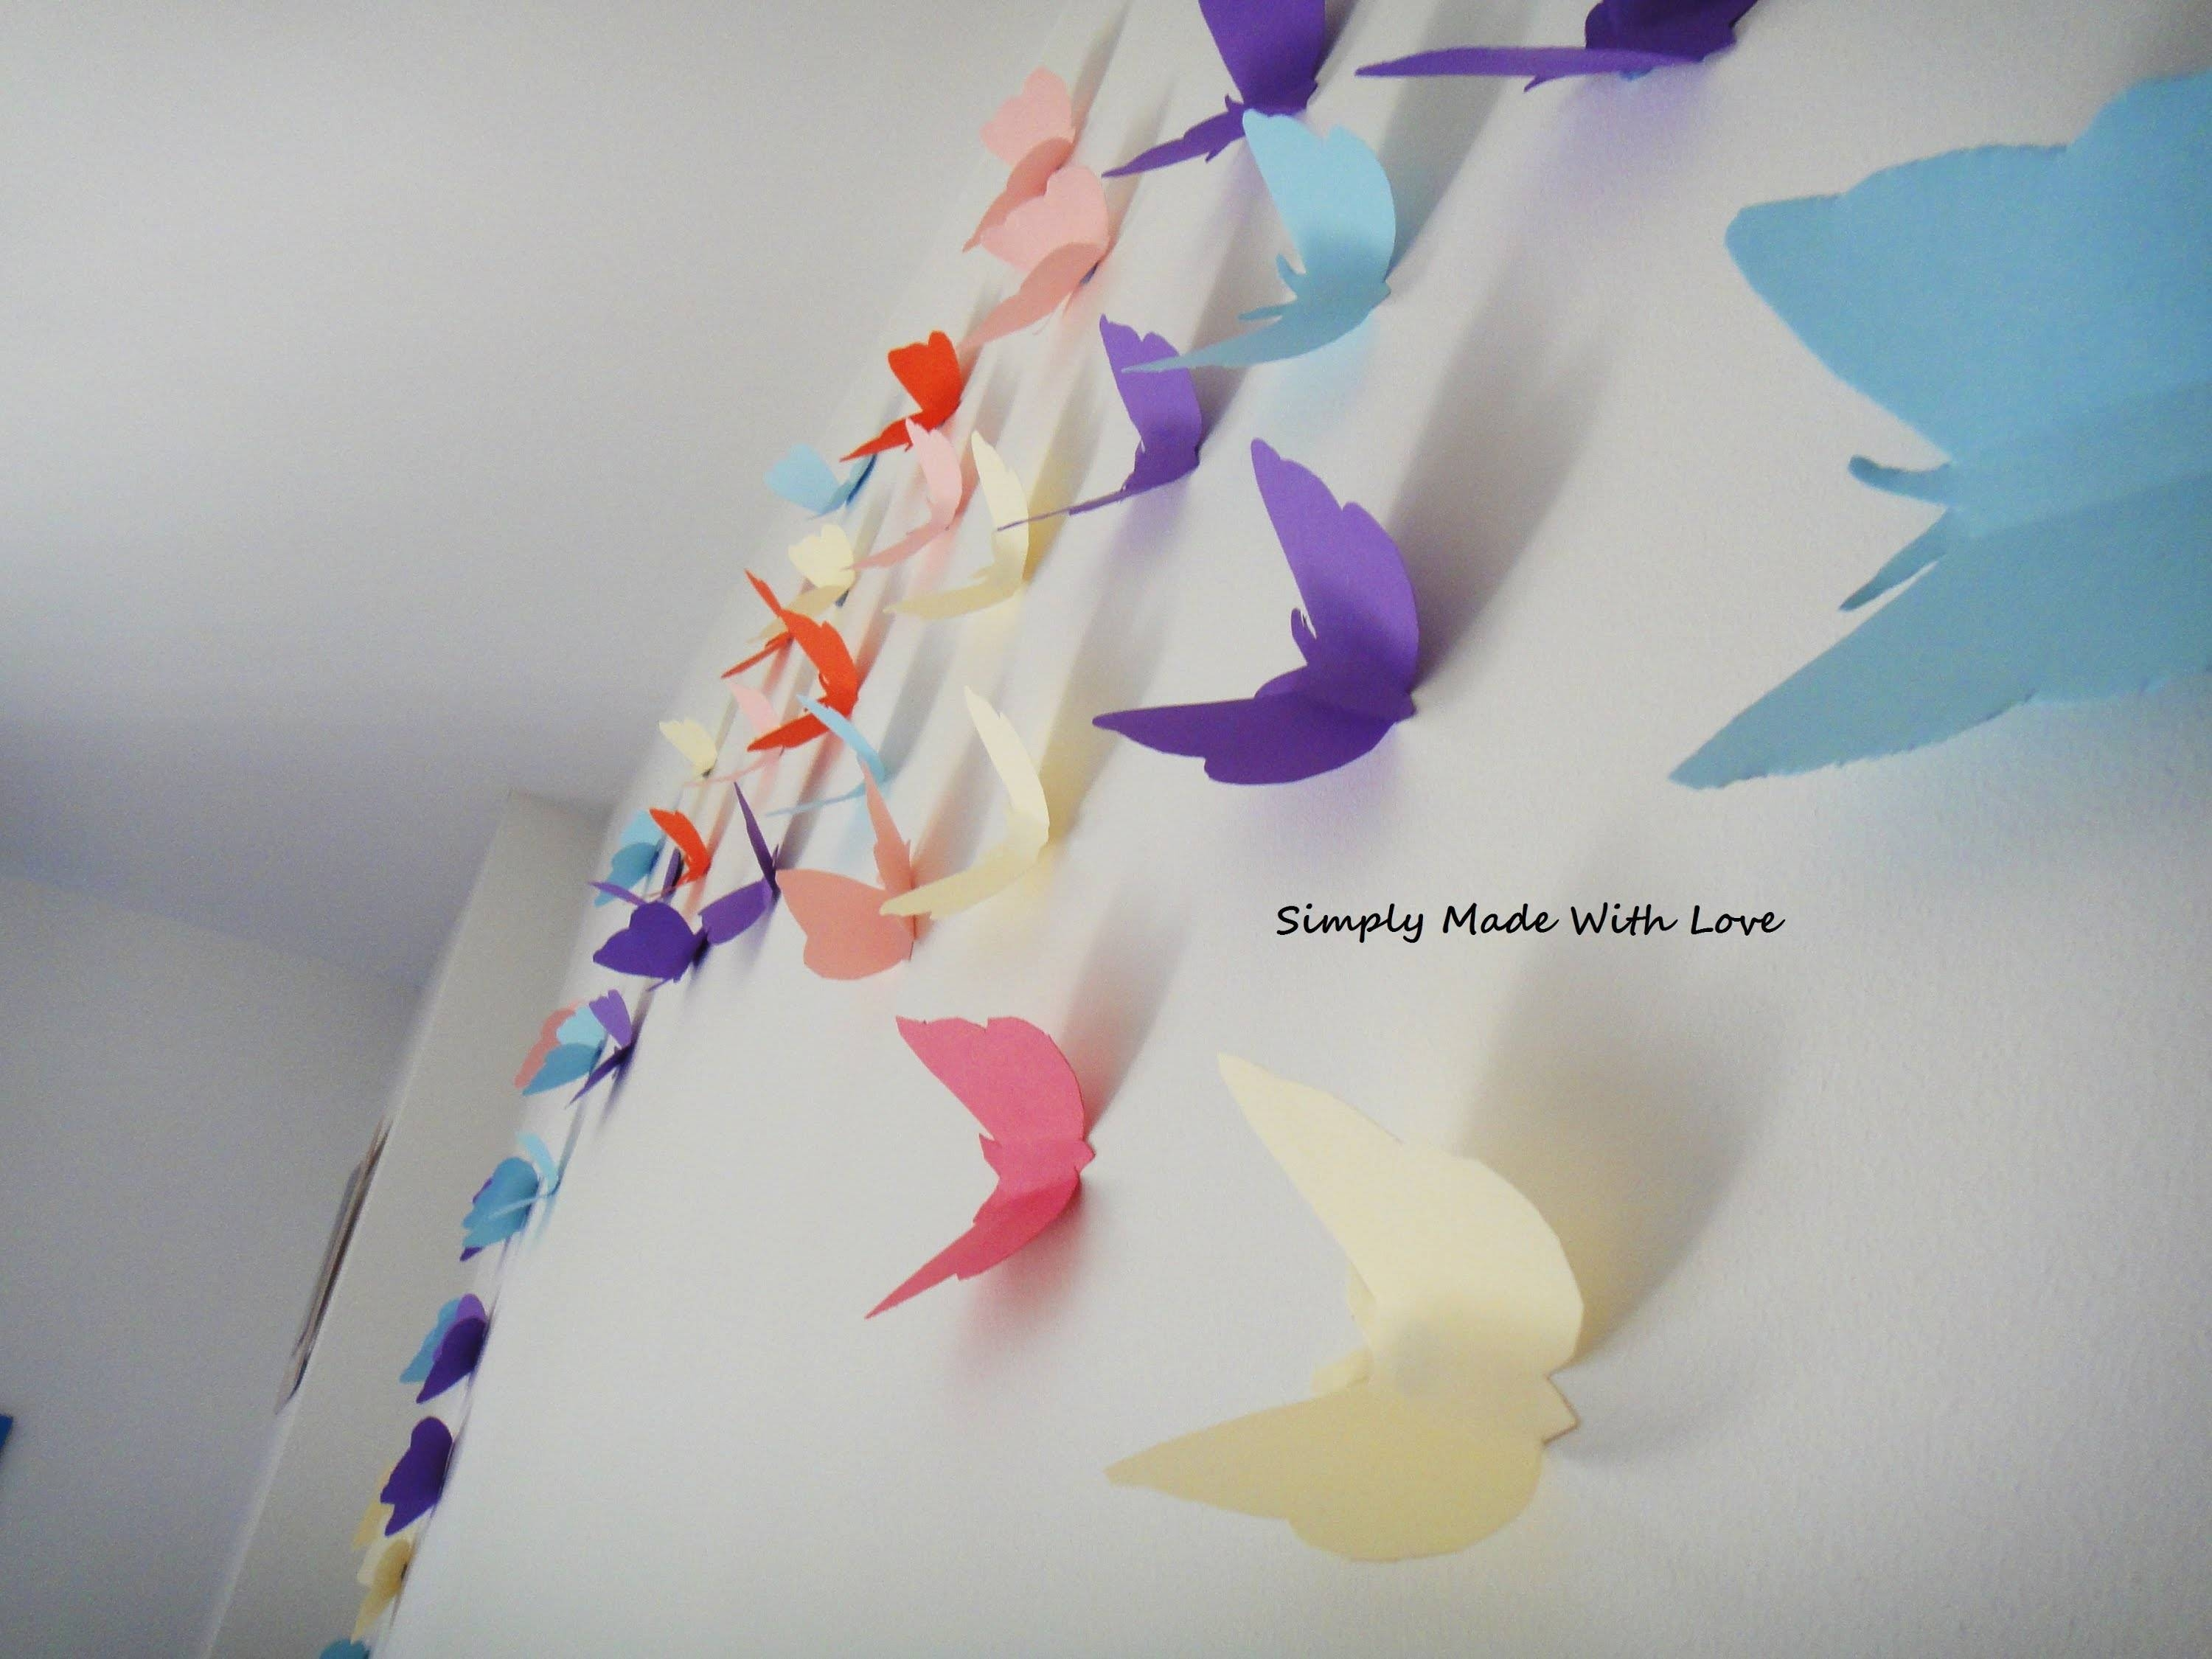 Diy How To Make Beautiful, Cheap And Easy, 3d Wall Decoration With In Recent Diy 3d Paper Wall Art (View 17 of 20)